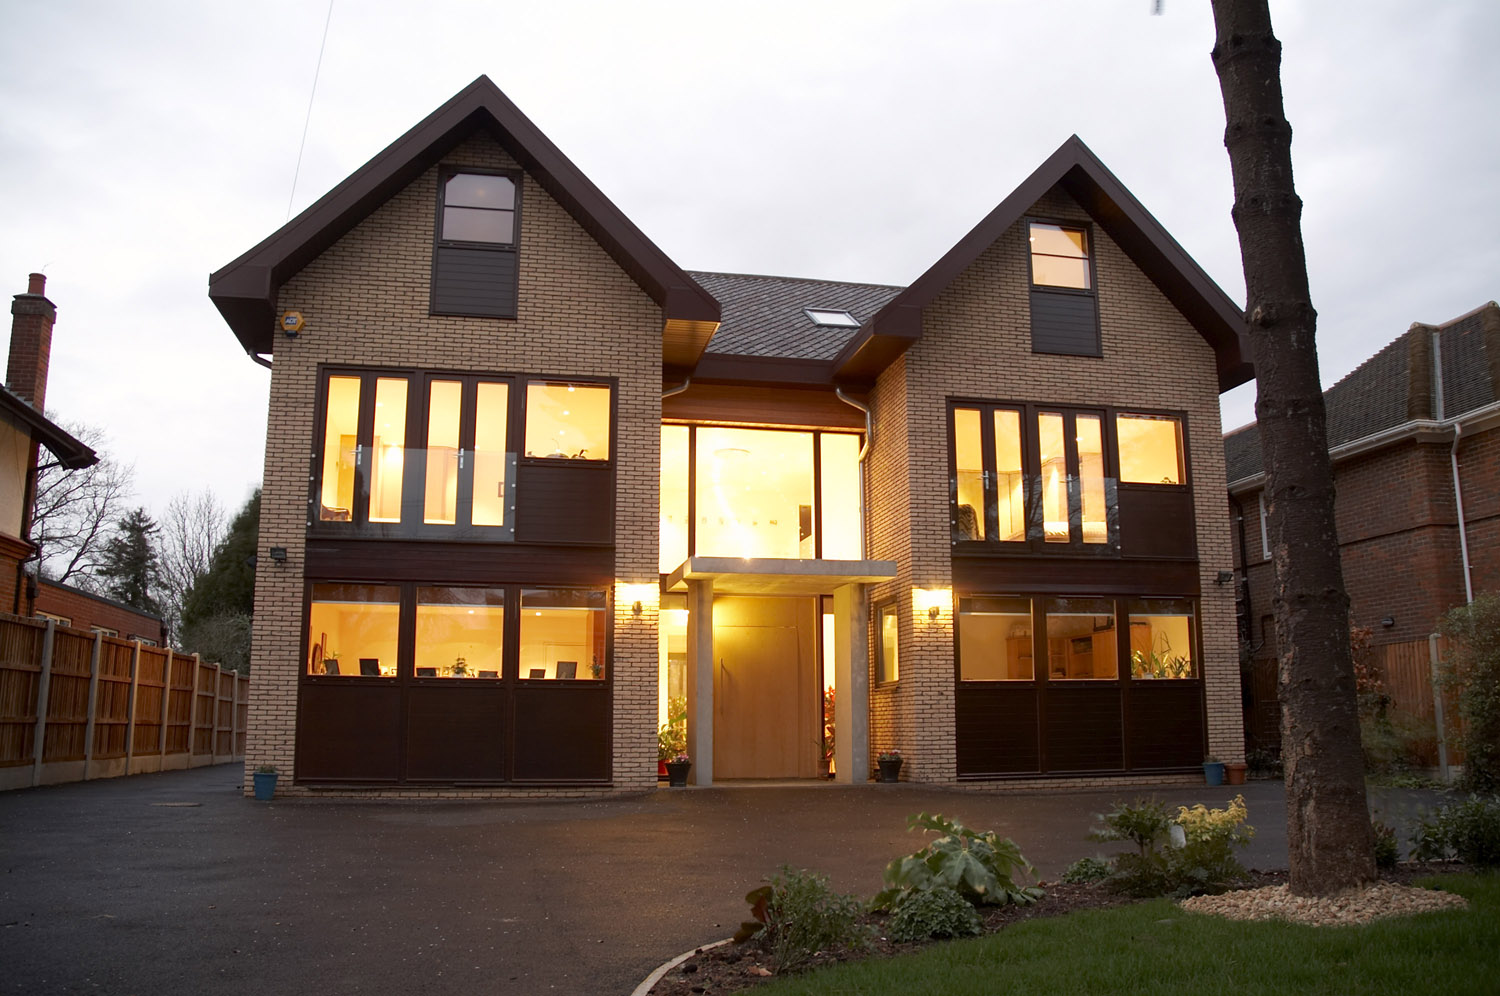 21 in addition La Moraleja 2 further ka Holzbau likewise Dallas further English American Country Style. on modern house home